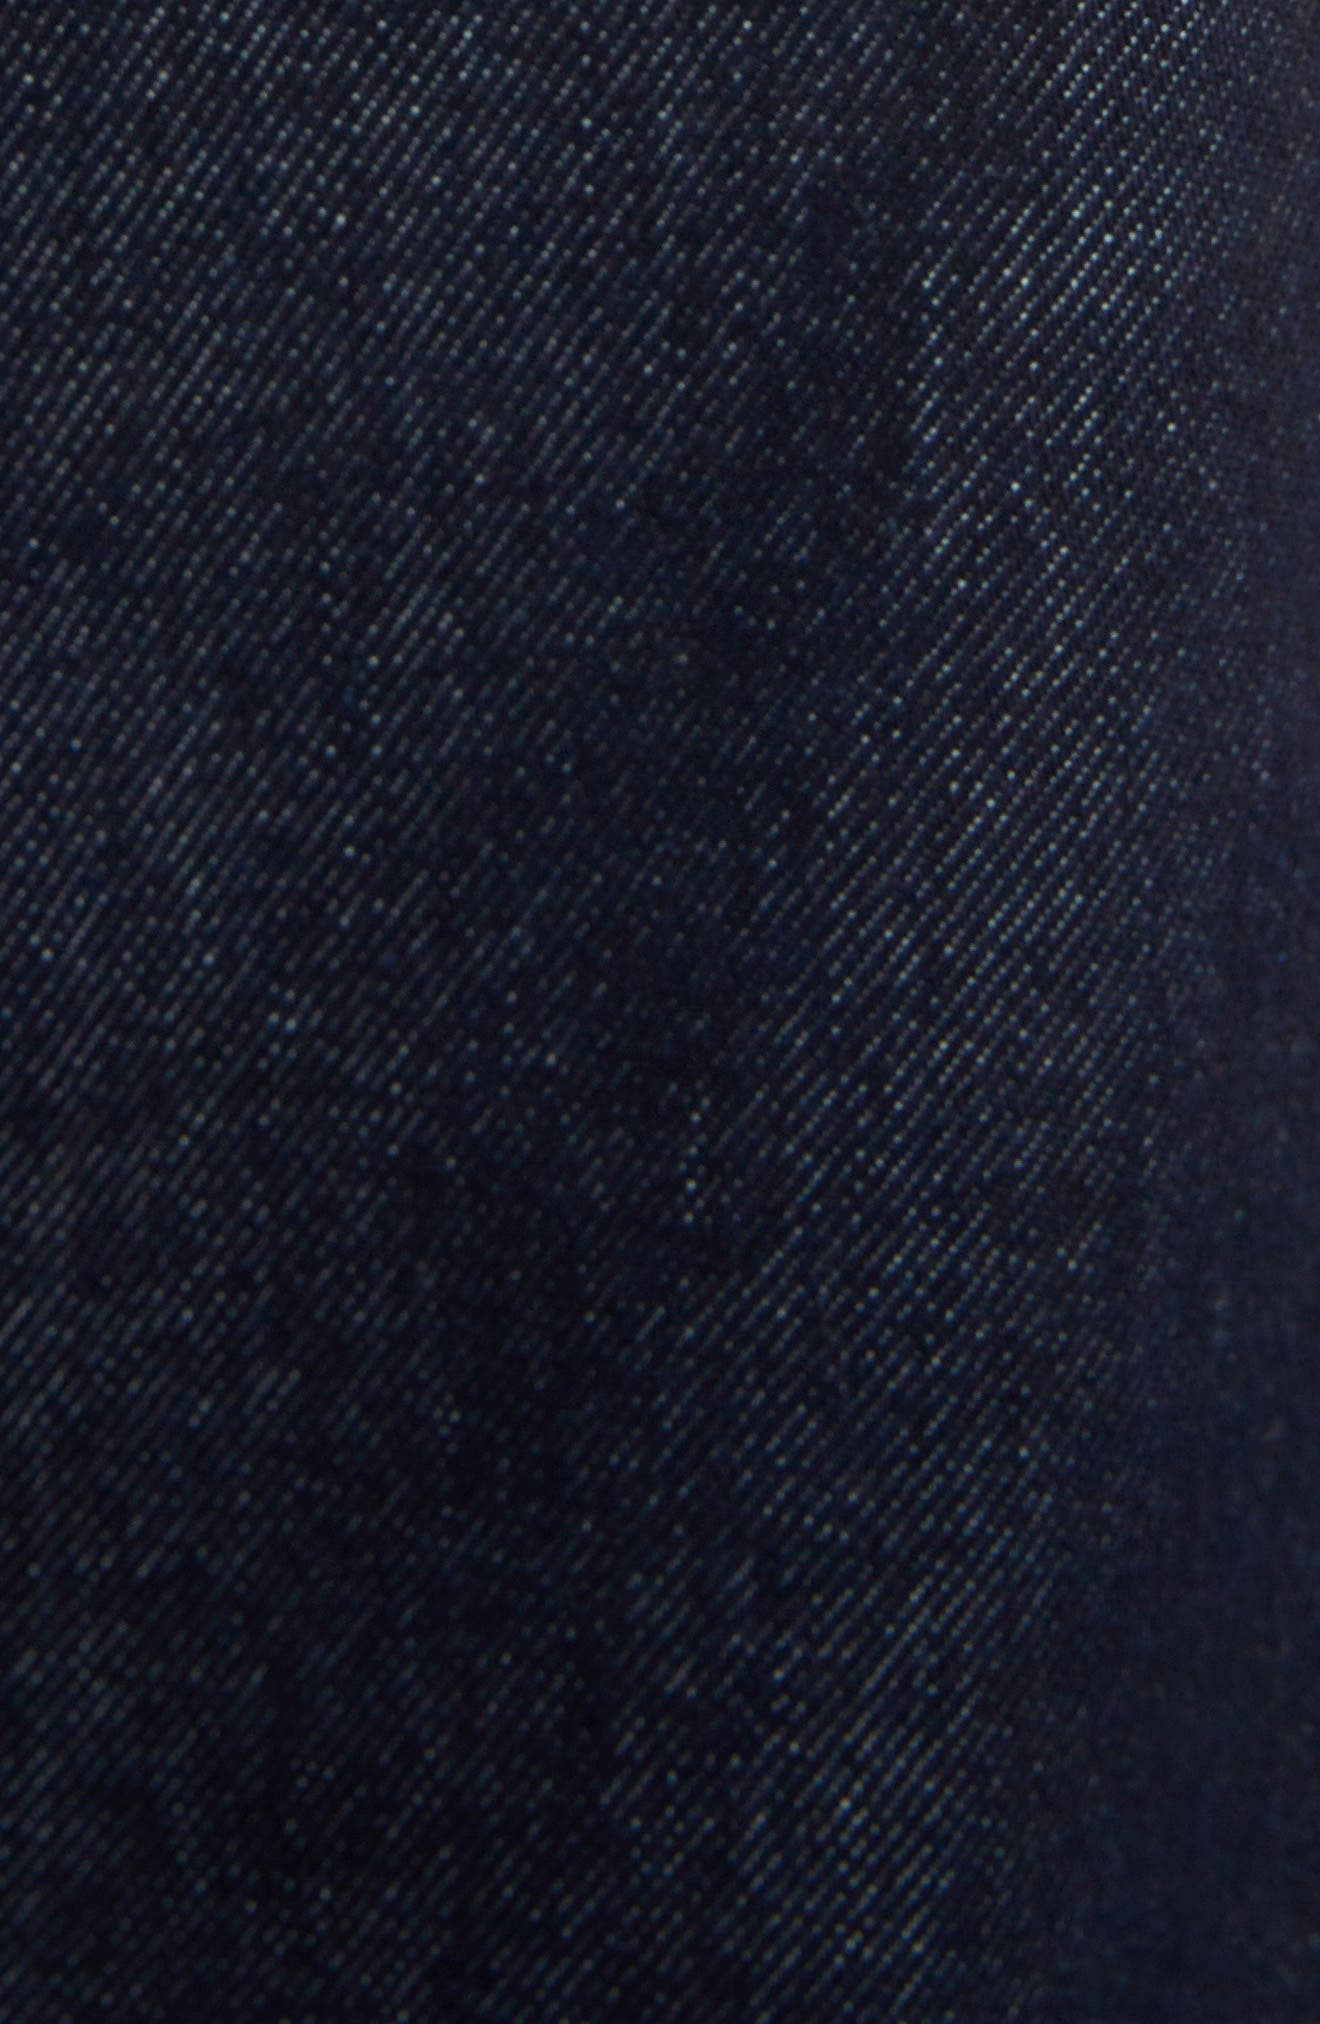 Boyfriend Jeans,                             Alternate thumbnail 5, color,                             400